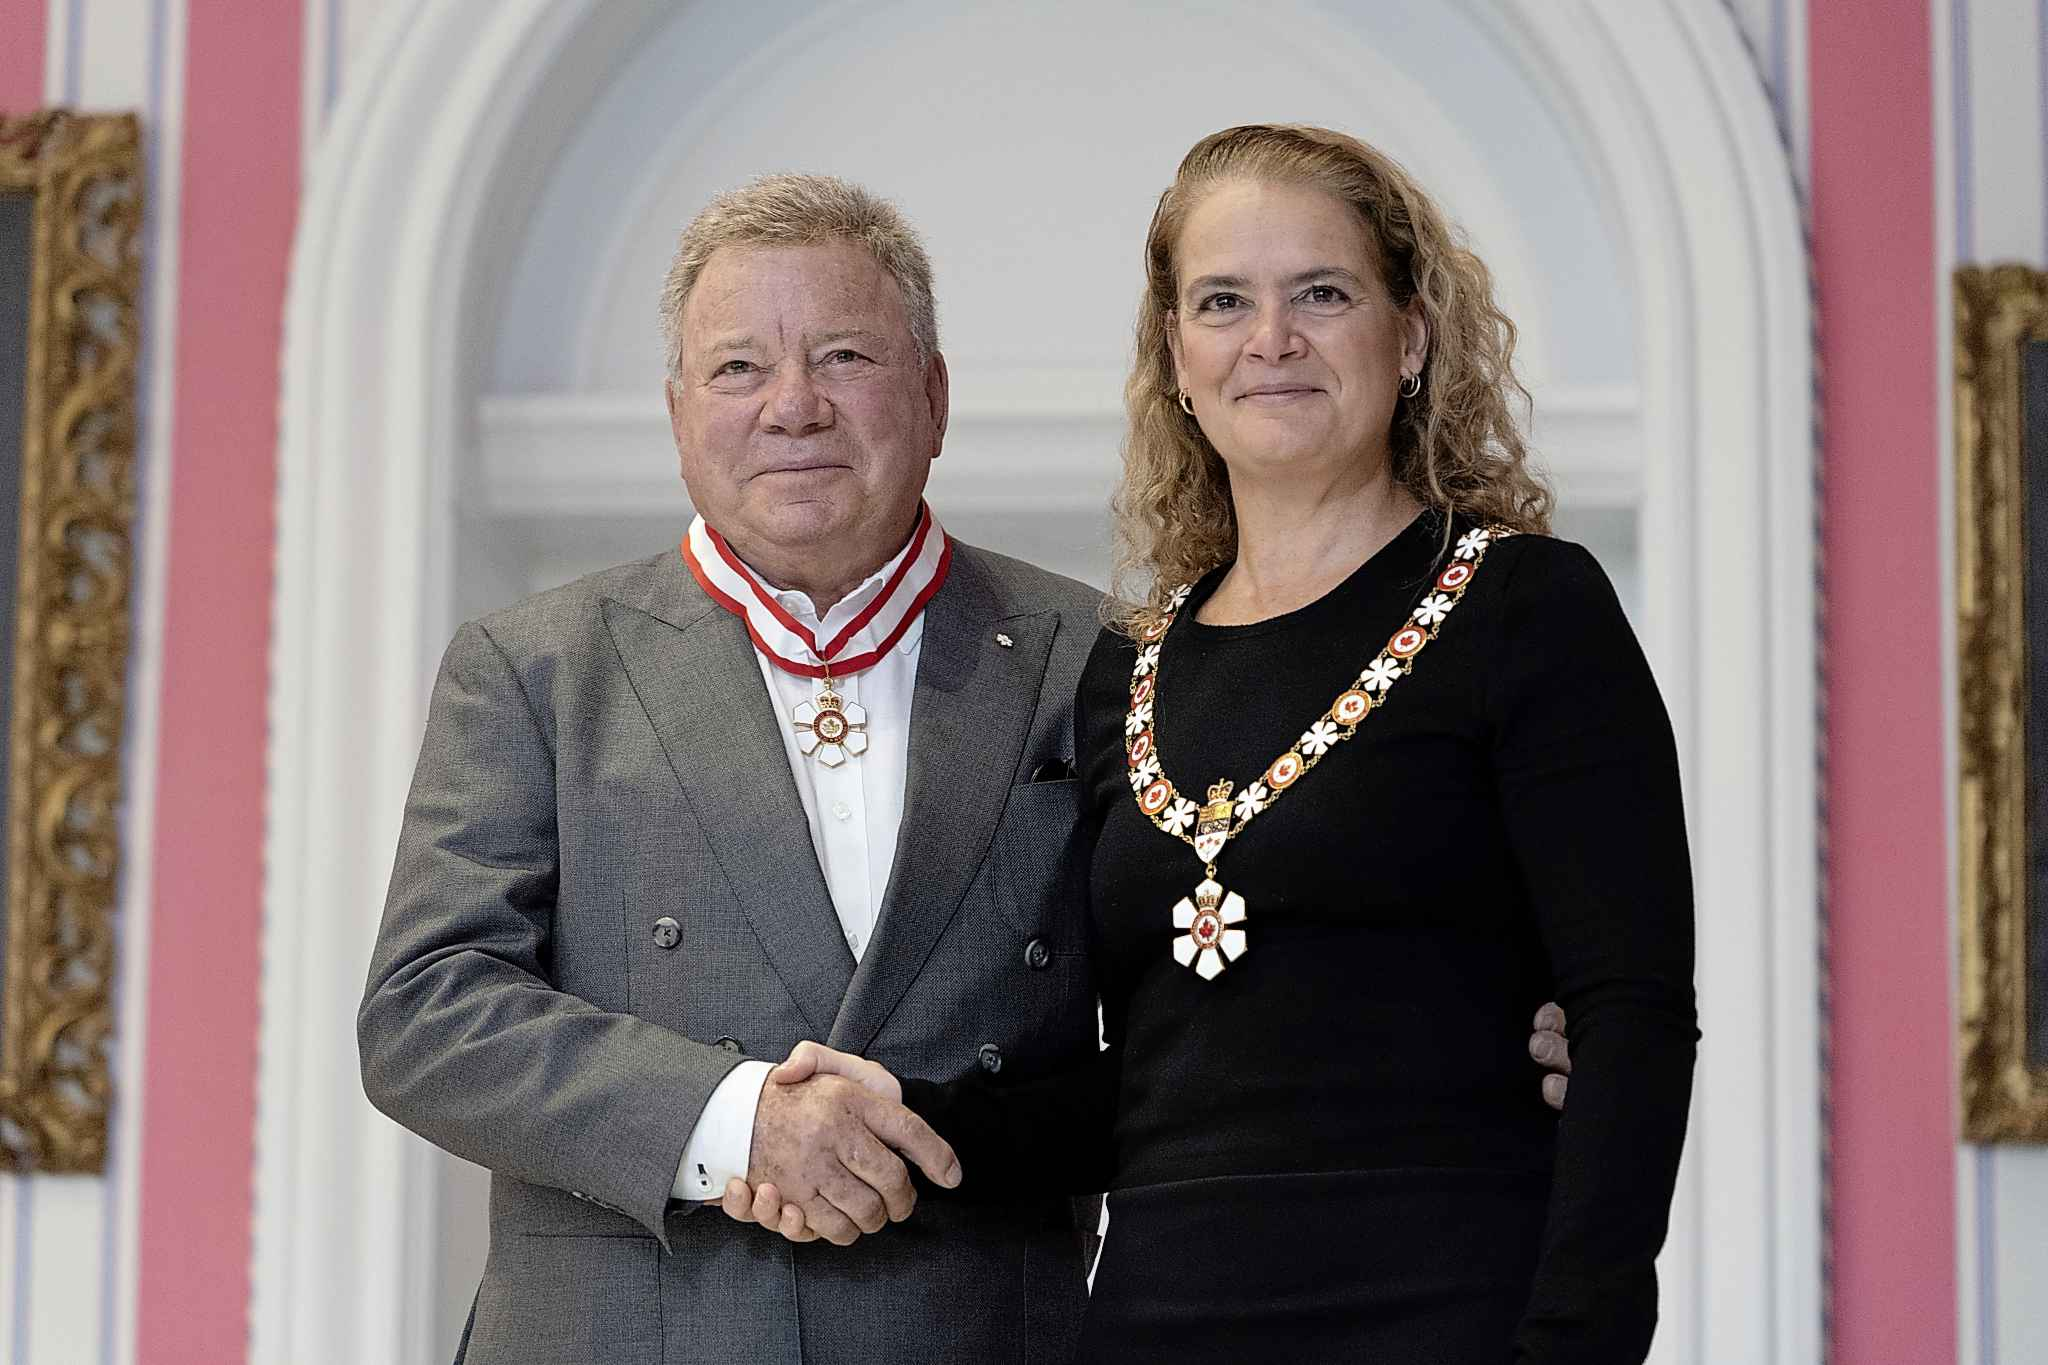 Actor William Shatner is invested as an Officer of the Order of Canada by Governor General Julie Payette during a ceremony at Rideau Hall in Ottawa on Thursday, November 21, 2019. THE CANADIAN PRESS/Chris Wattie